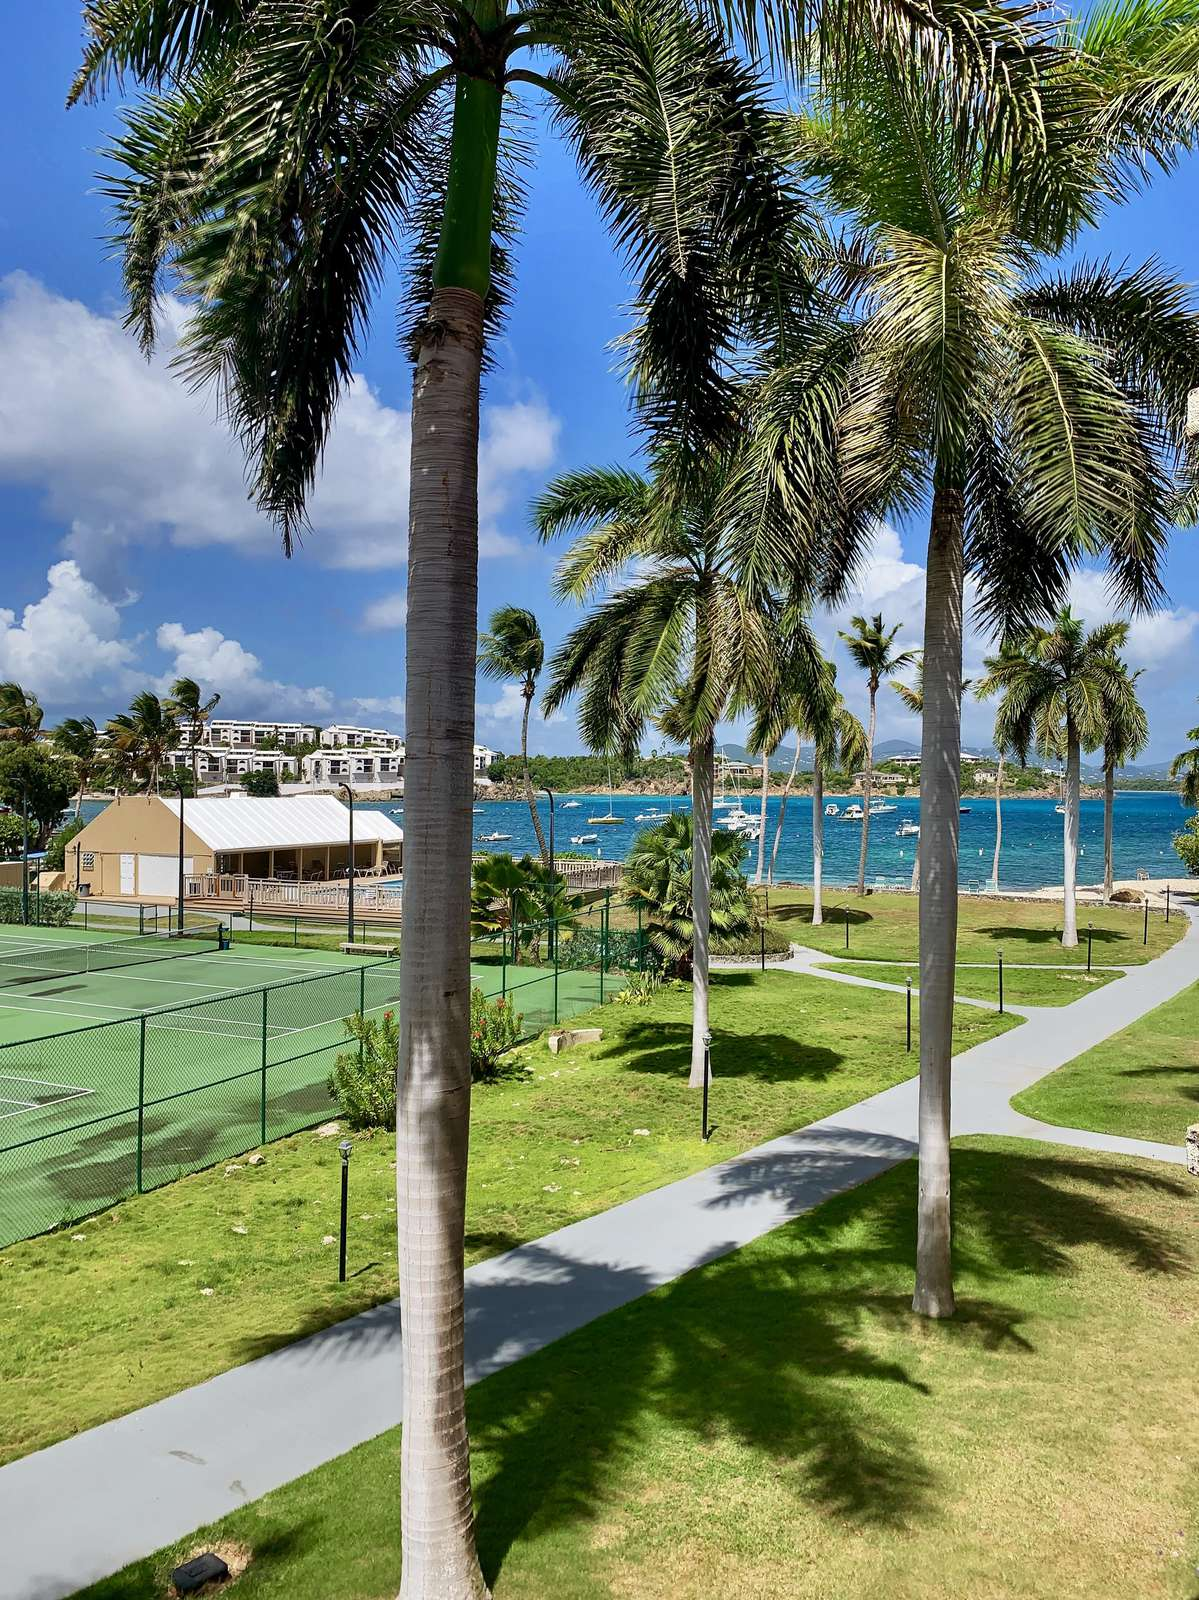 Views of the tennis court and pool